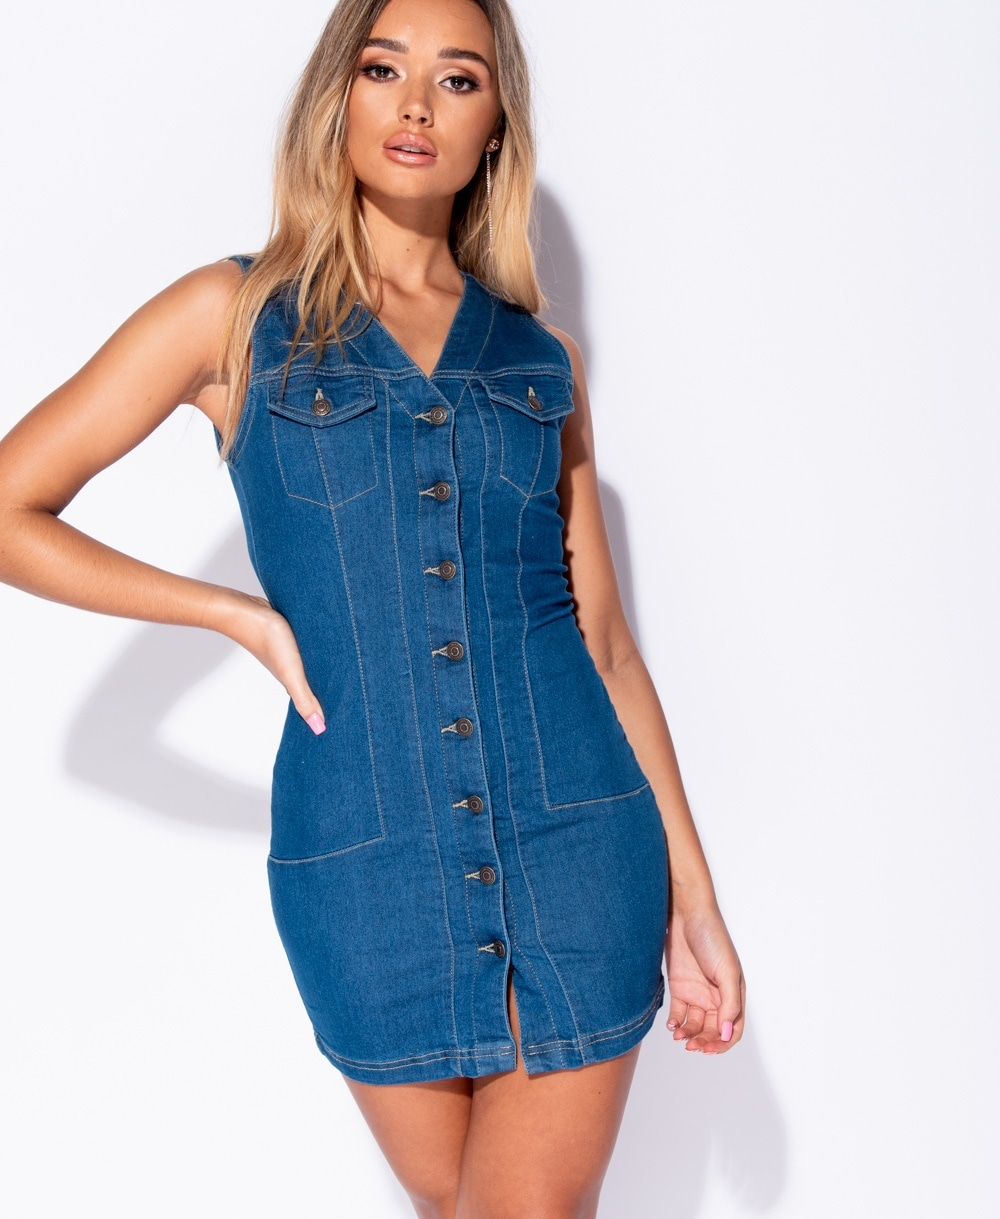 c36156eafe6 Wholesale Denim Button Up V Neck Sleeveless Shirt Dress